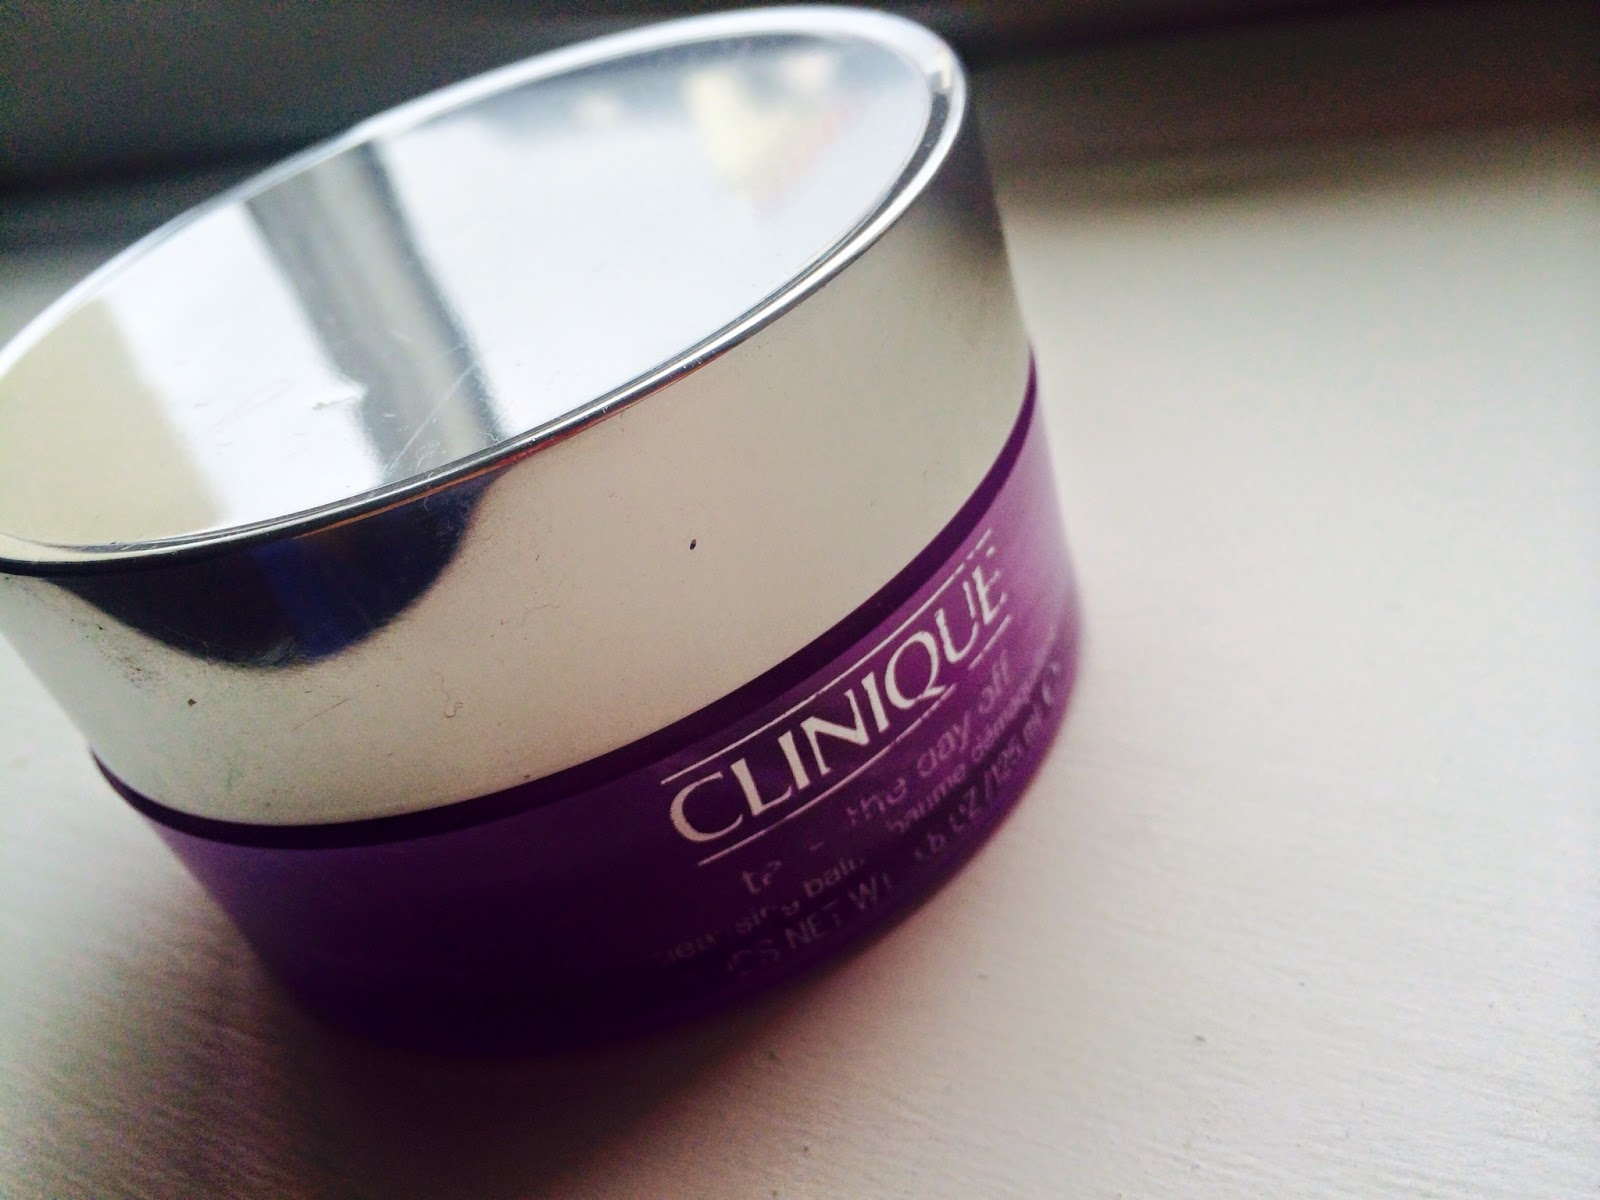 Clinique's Take the Day Off Cleansing balm